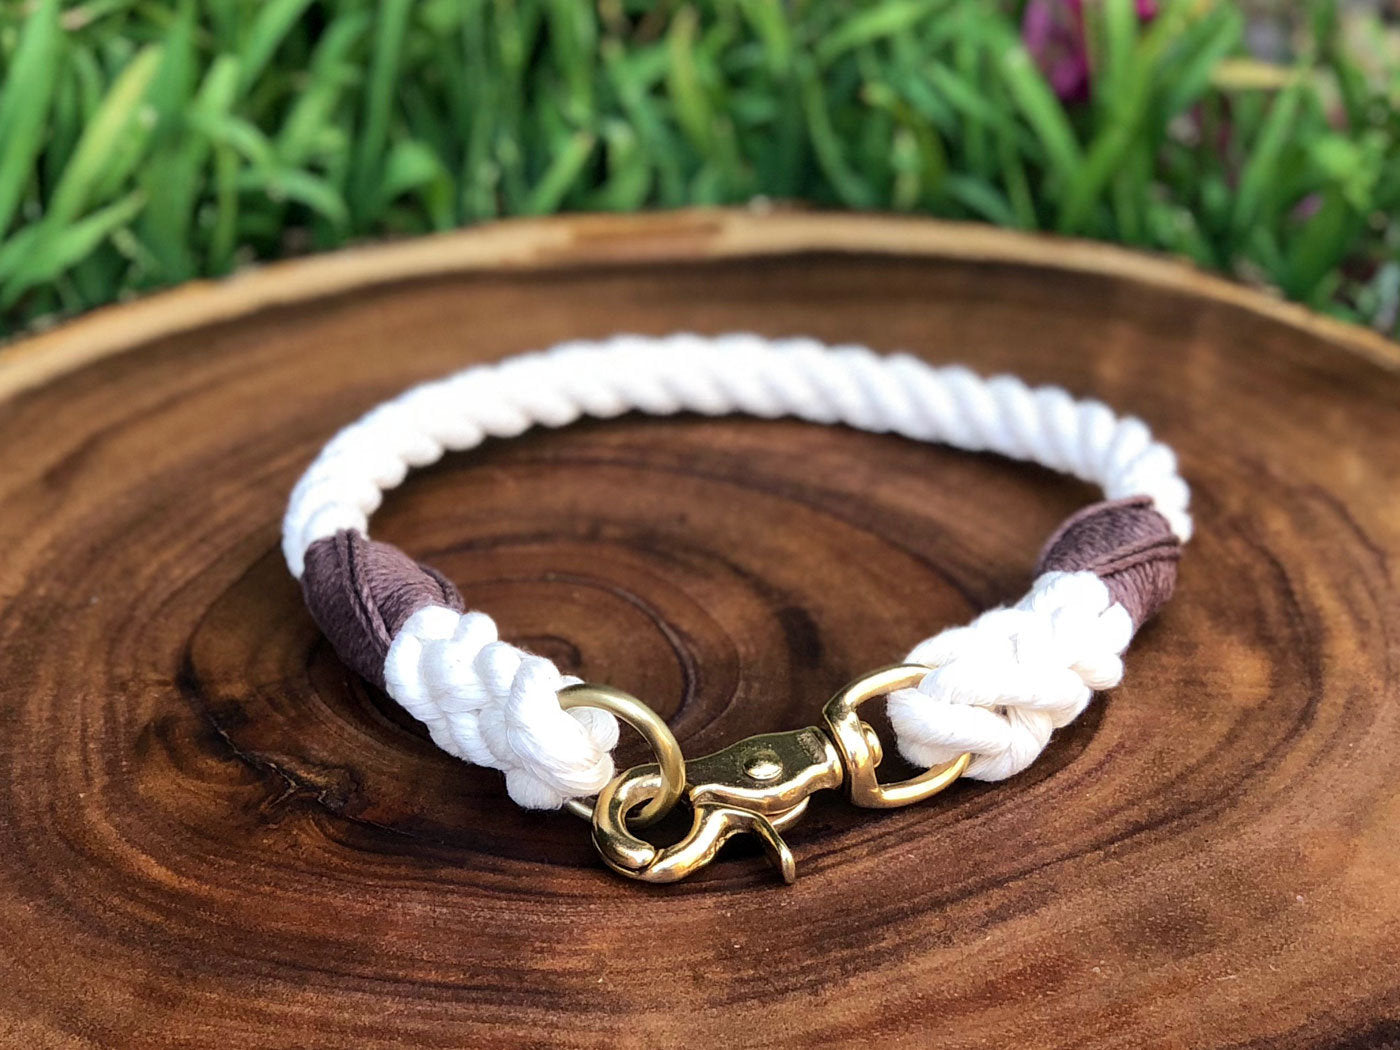 Organic Cotton Rope Dog Collar - For Large and Extra Large Dogs